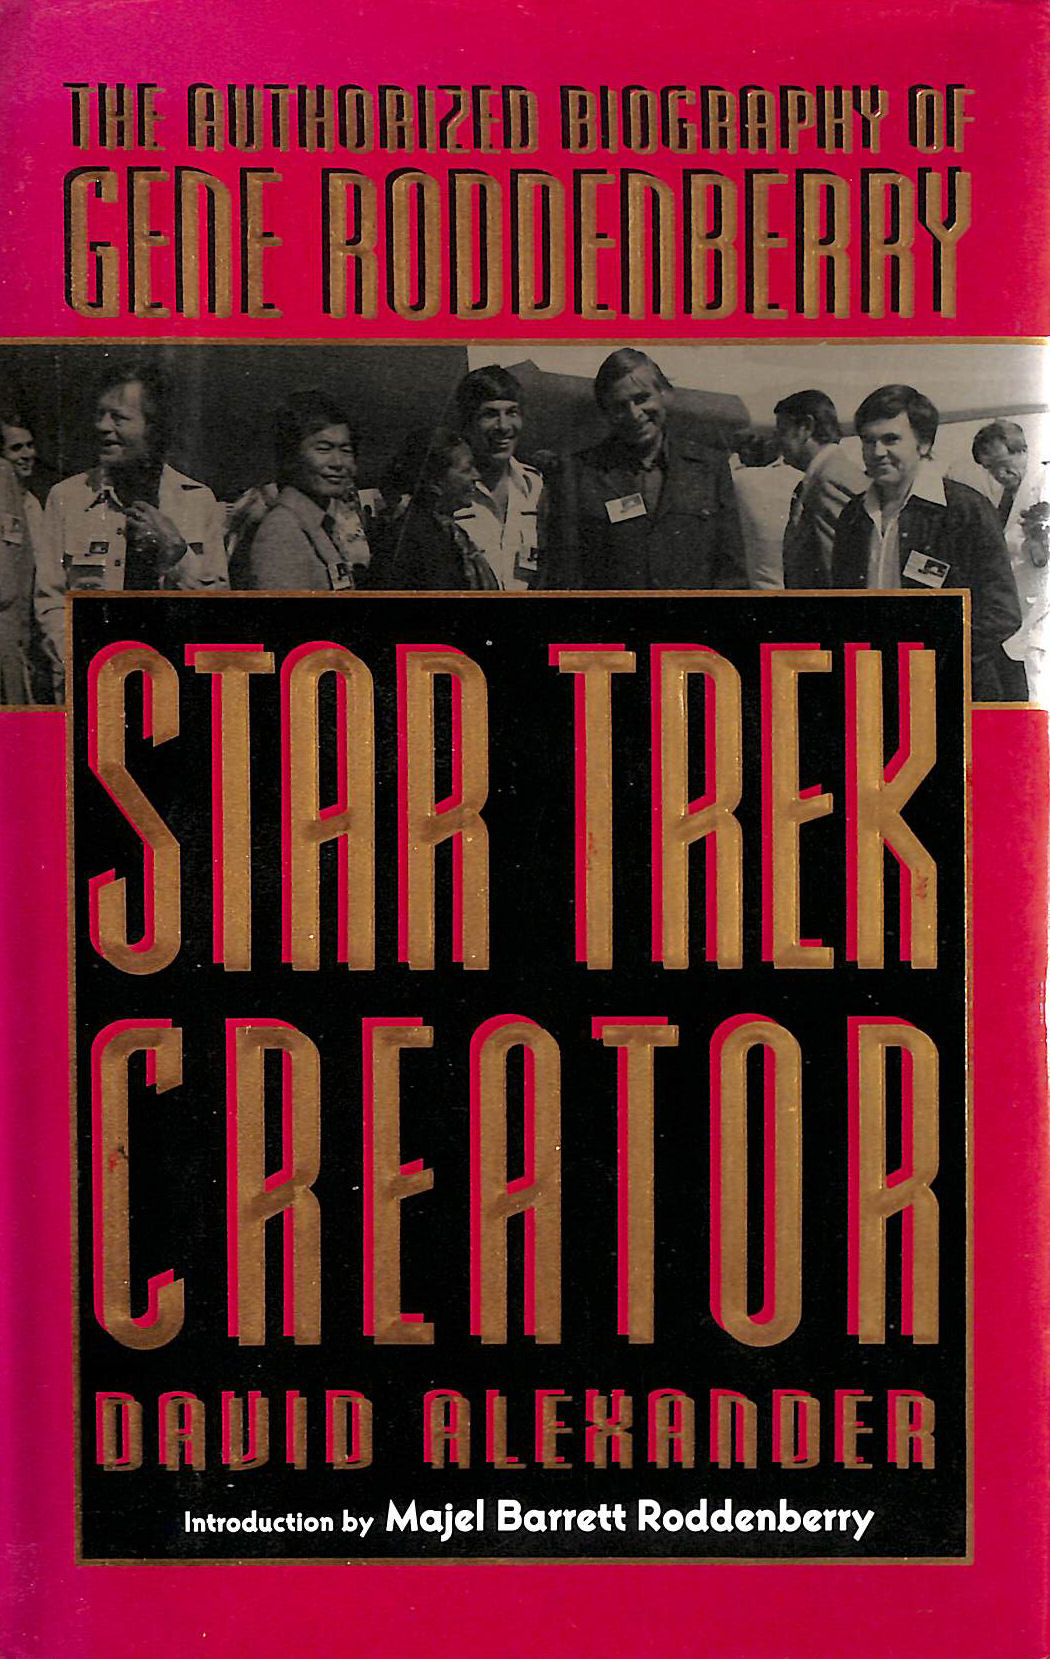 Image for Star Trek Creator: The Authorized Biography of Gene Roddenberry: Authorised Biography of Gene Roddenberry (Roc S.)